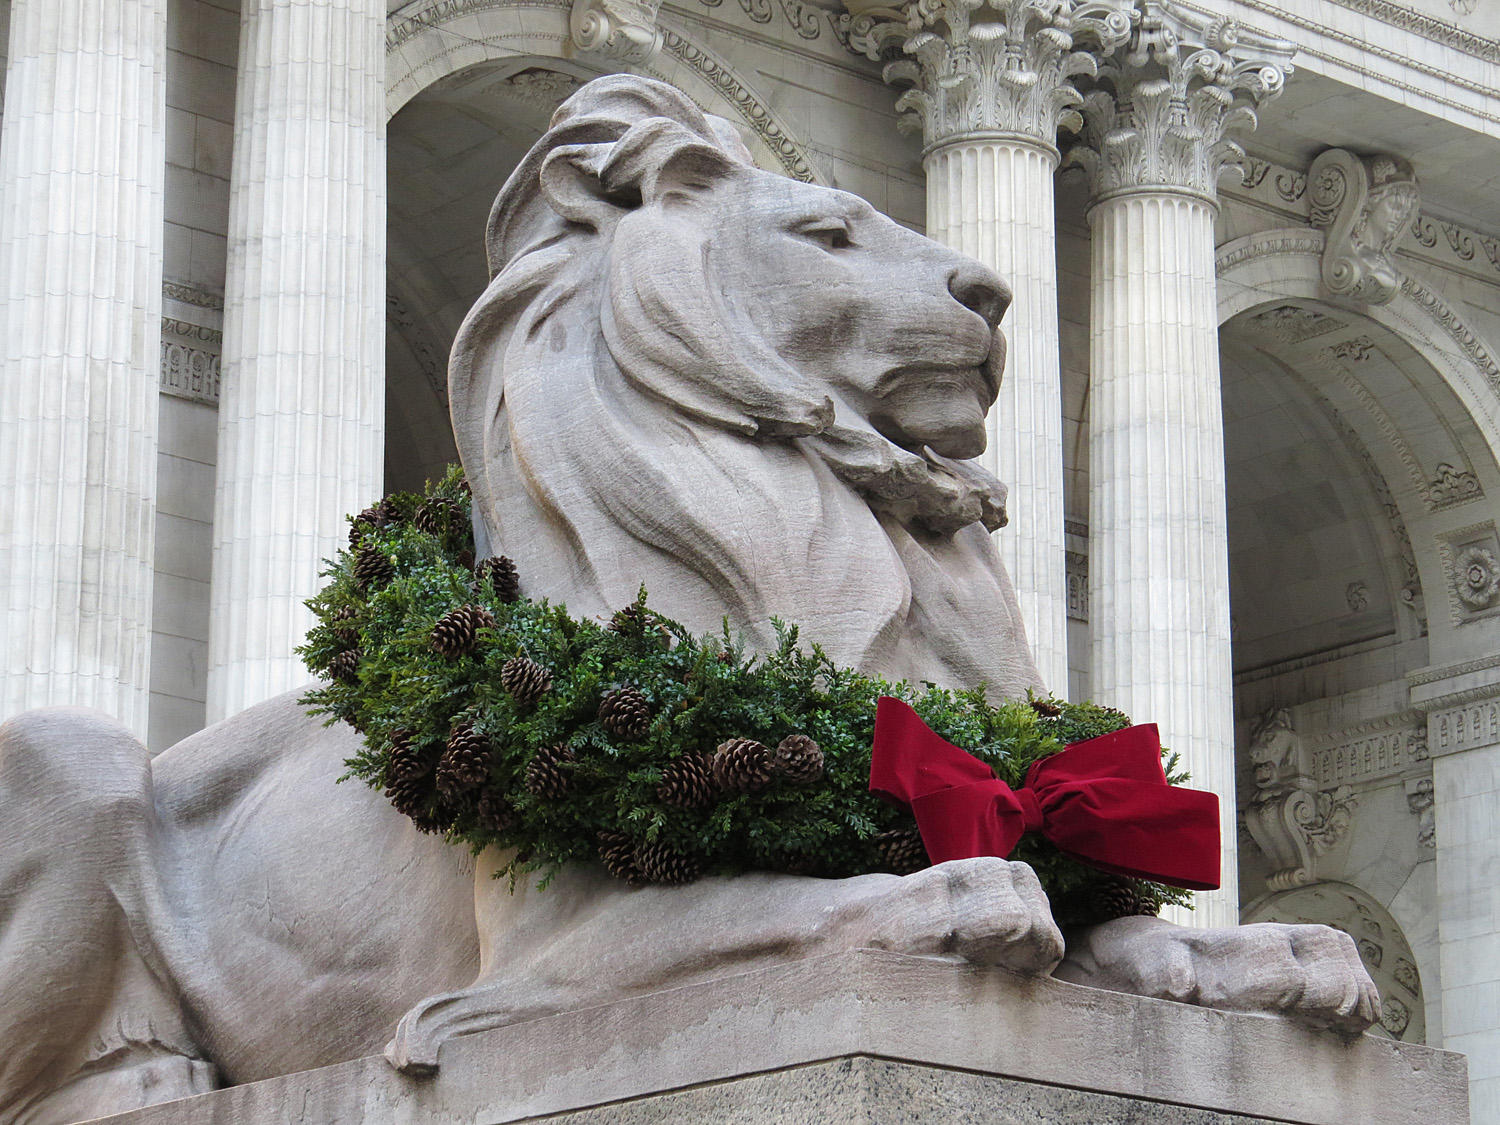 A New York Public Library lion, decked out in holiday style, coming soon!